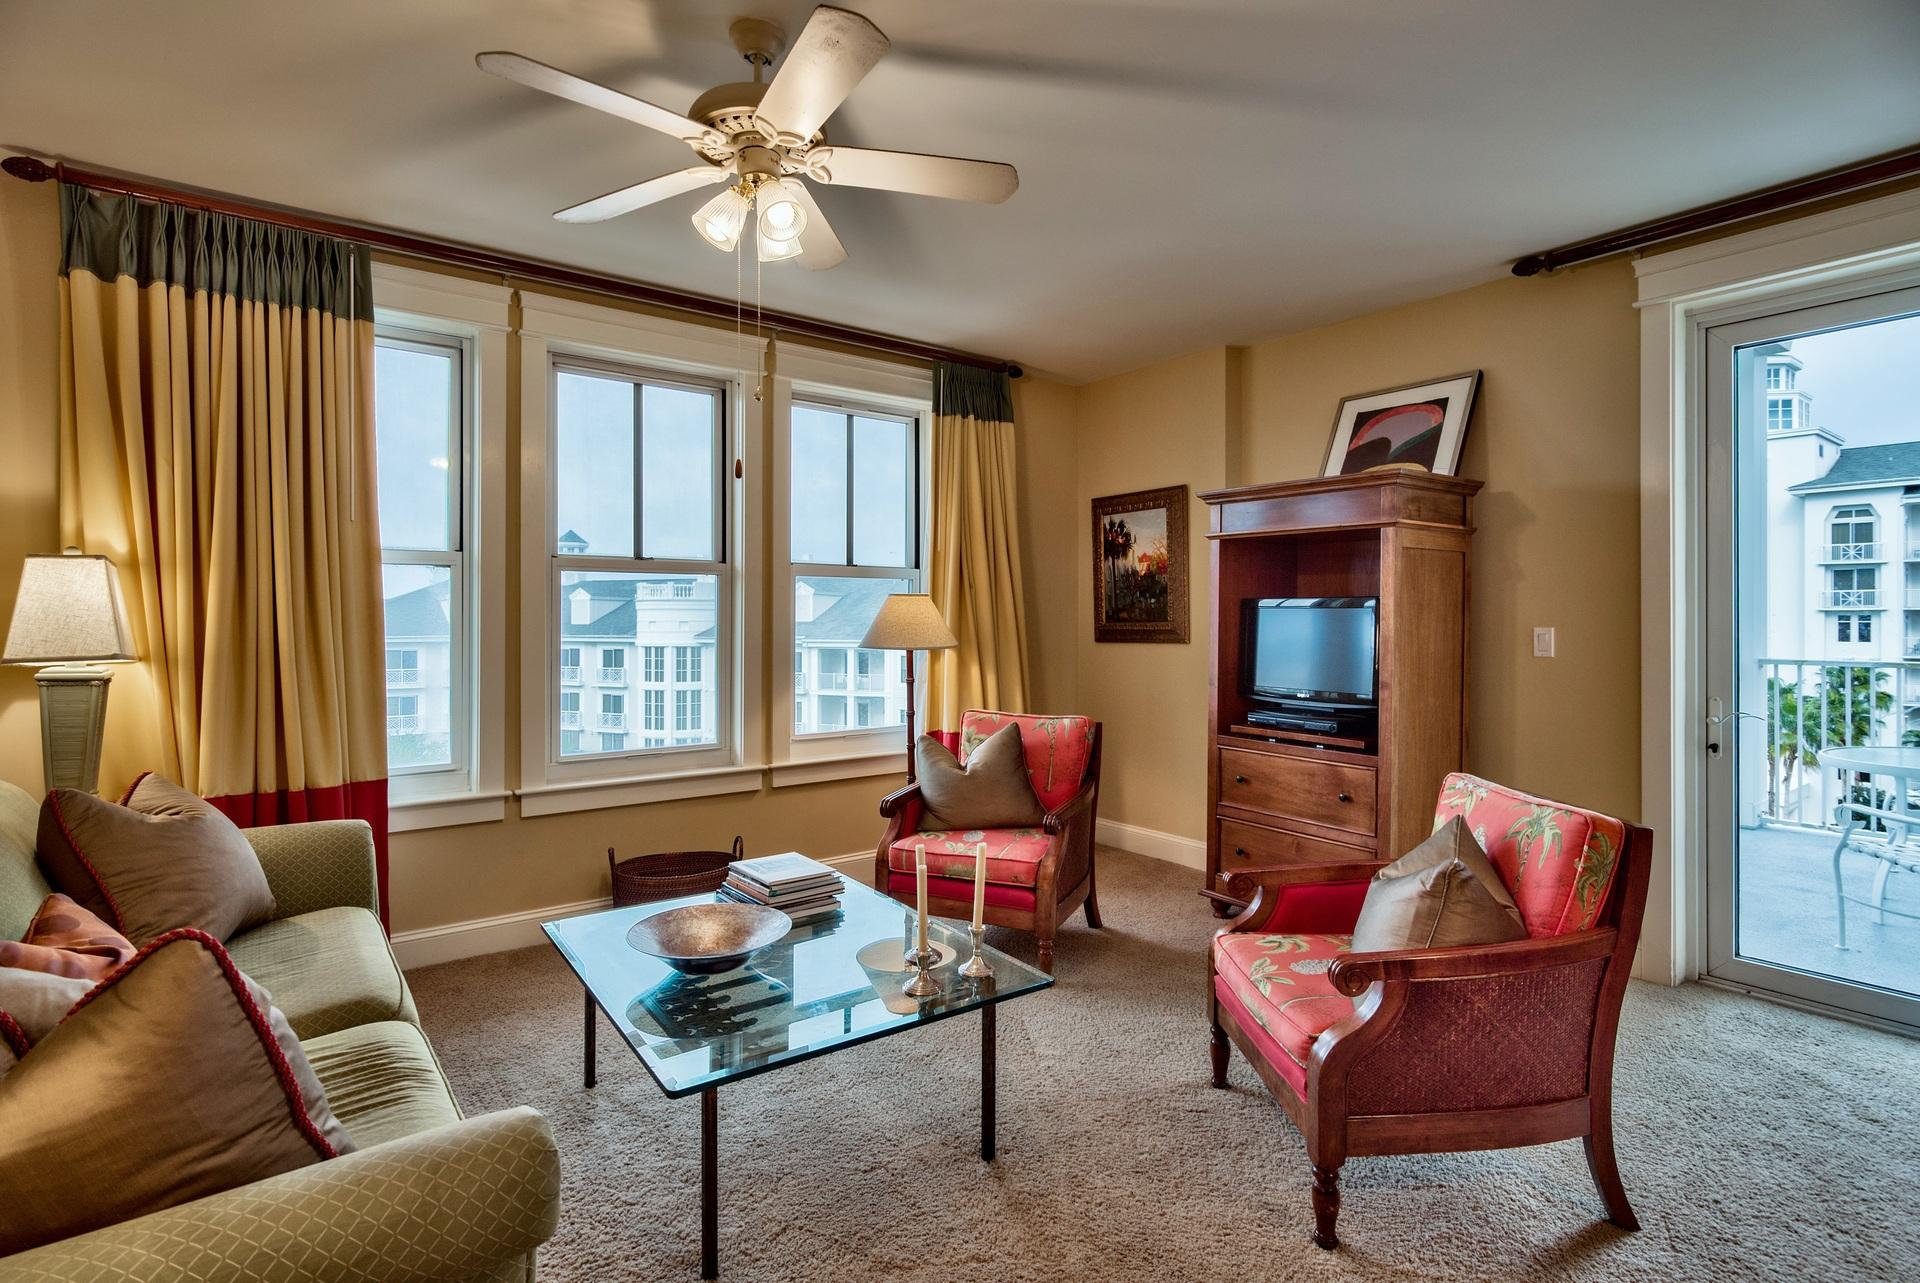 A 2 Bedroom 2 Bedroom Grand Sandestin The Condominium